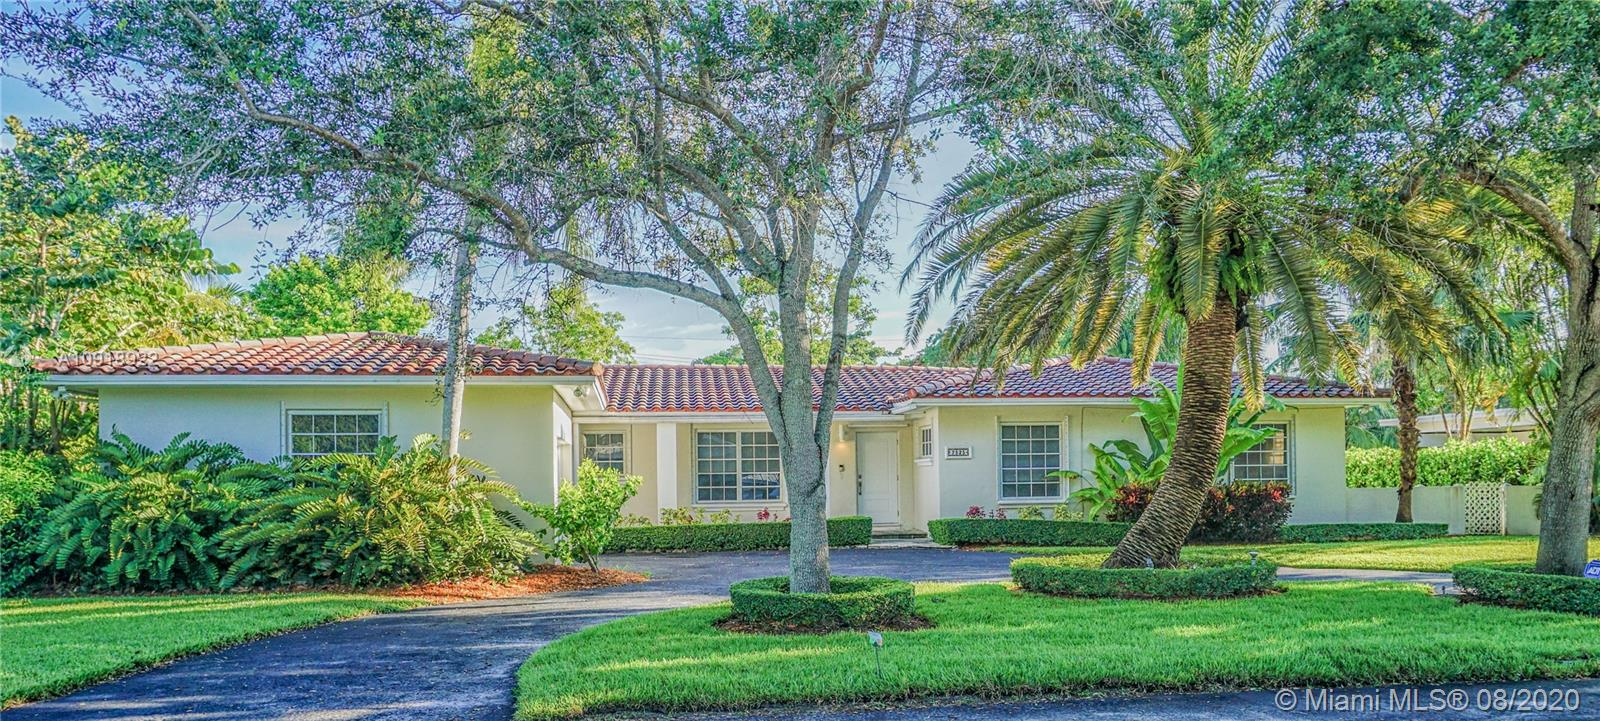 7525 SW 61st St  For Sale A10918922, FL